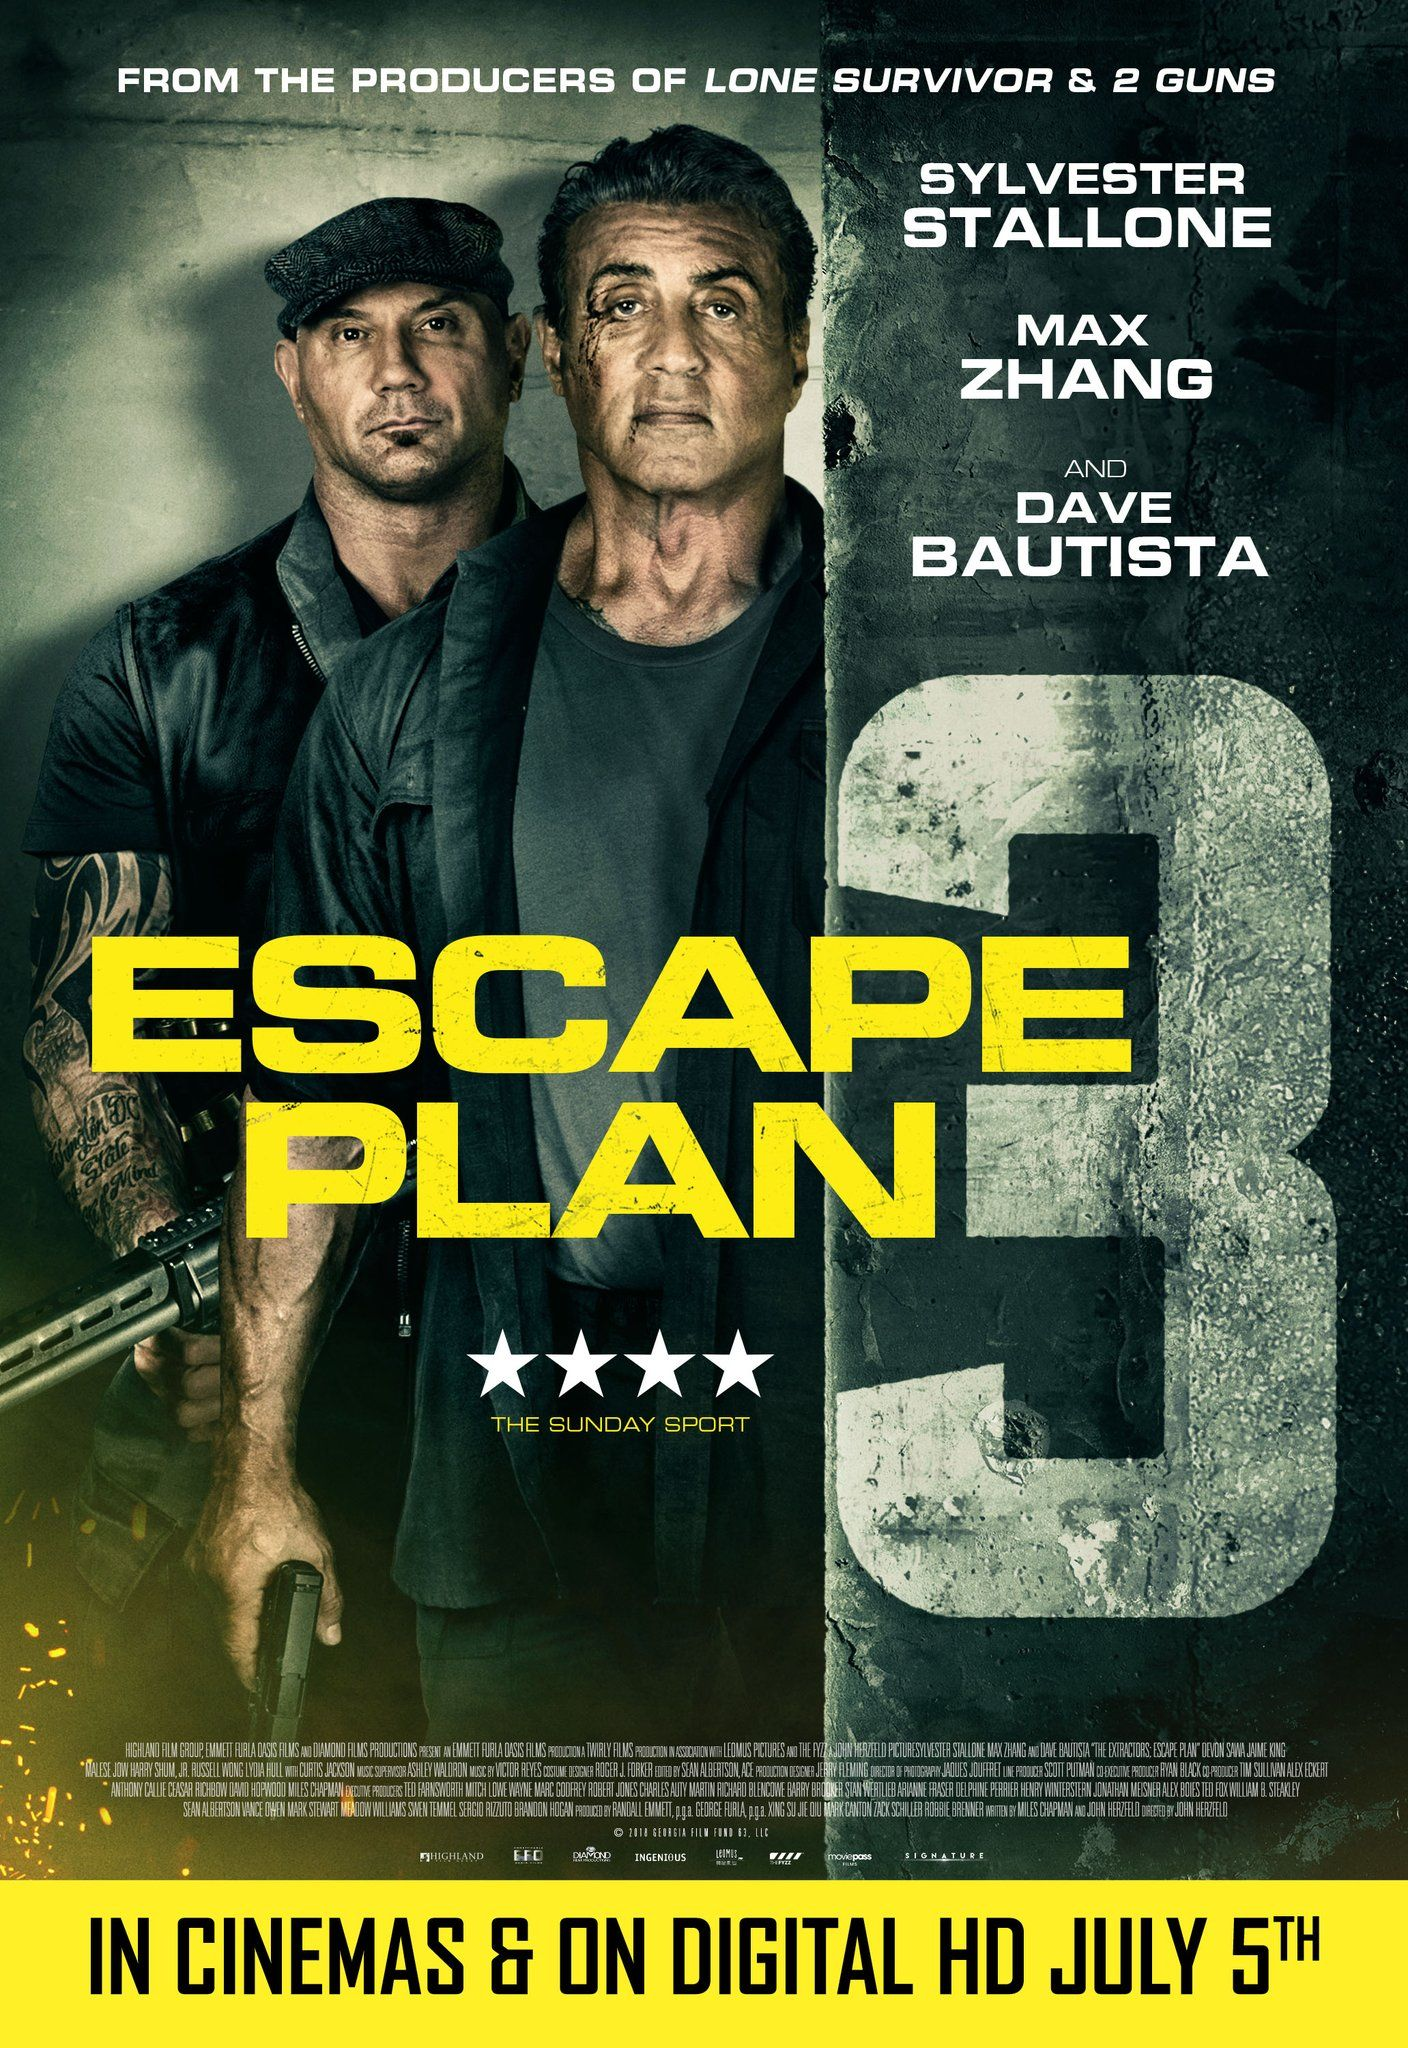 Escape Plan 3 The Extractors Red Band Movie Trailer And Posters Https Teaser Trailer Com Movie Escape Plan 3 Escape Plan Free Movies Online How To Plan